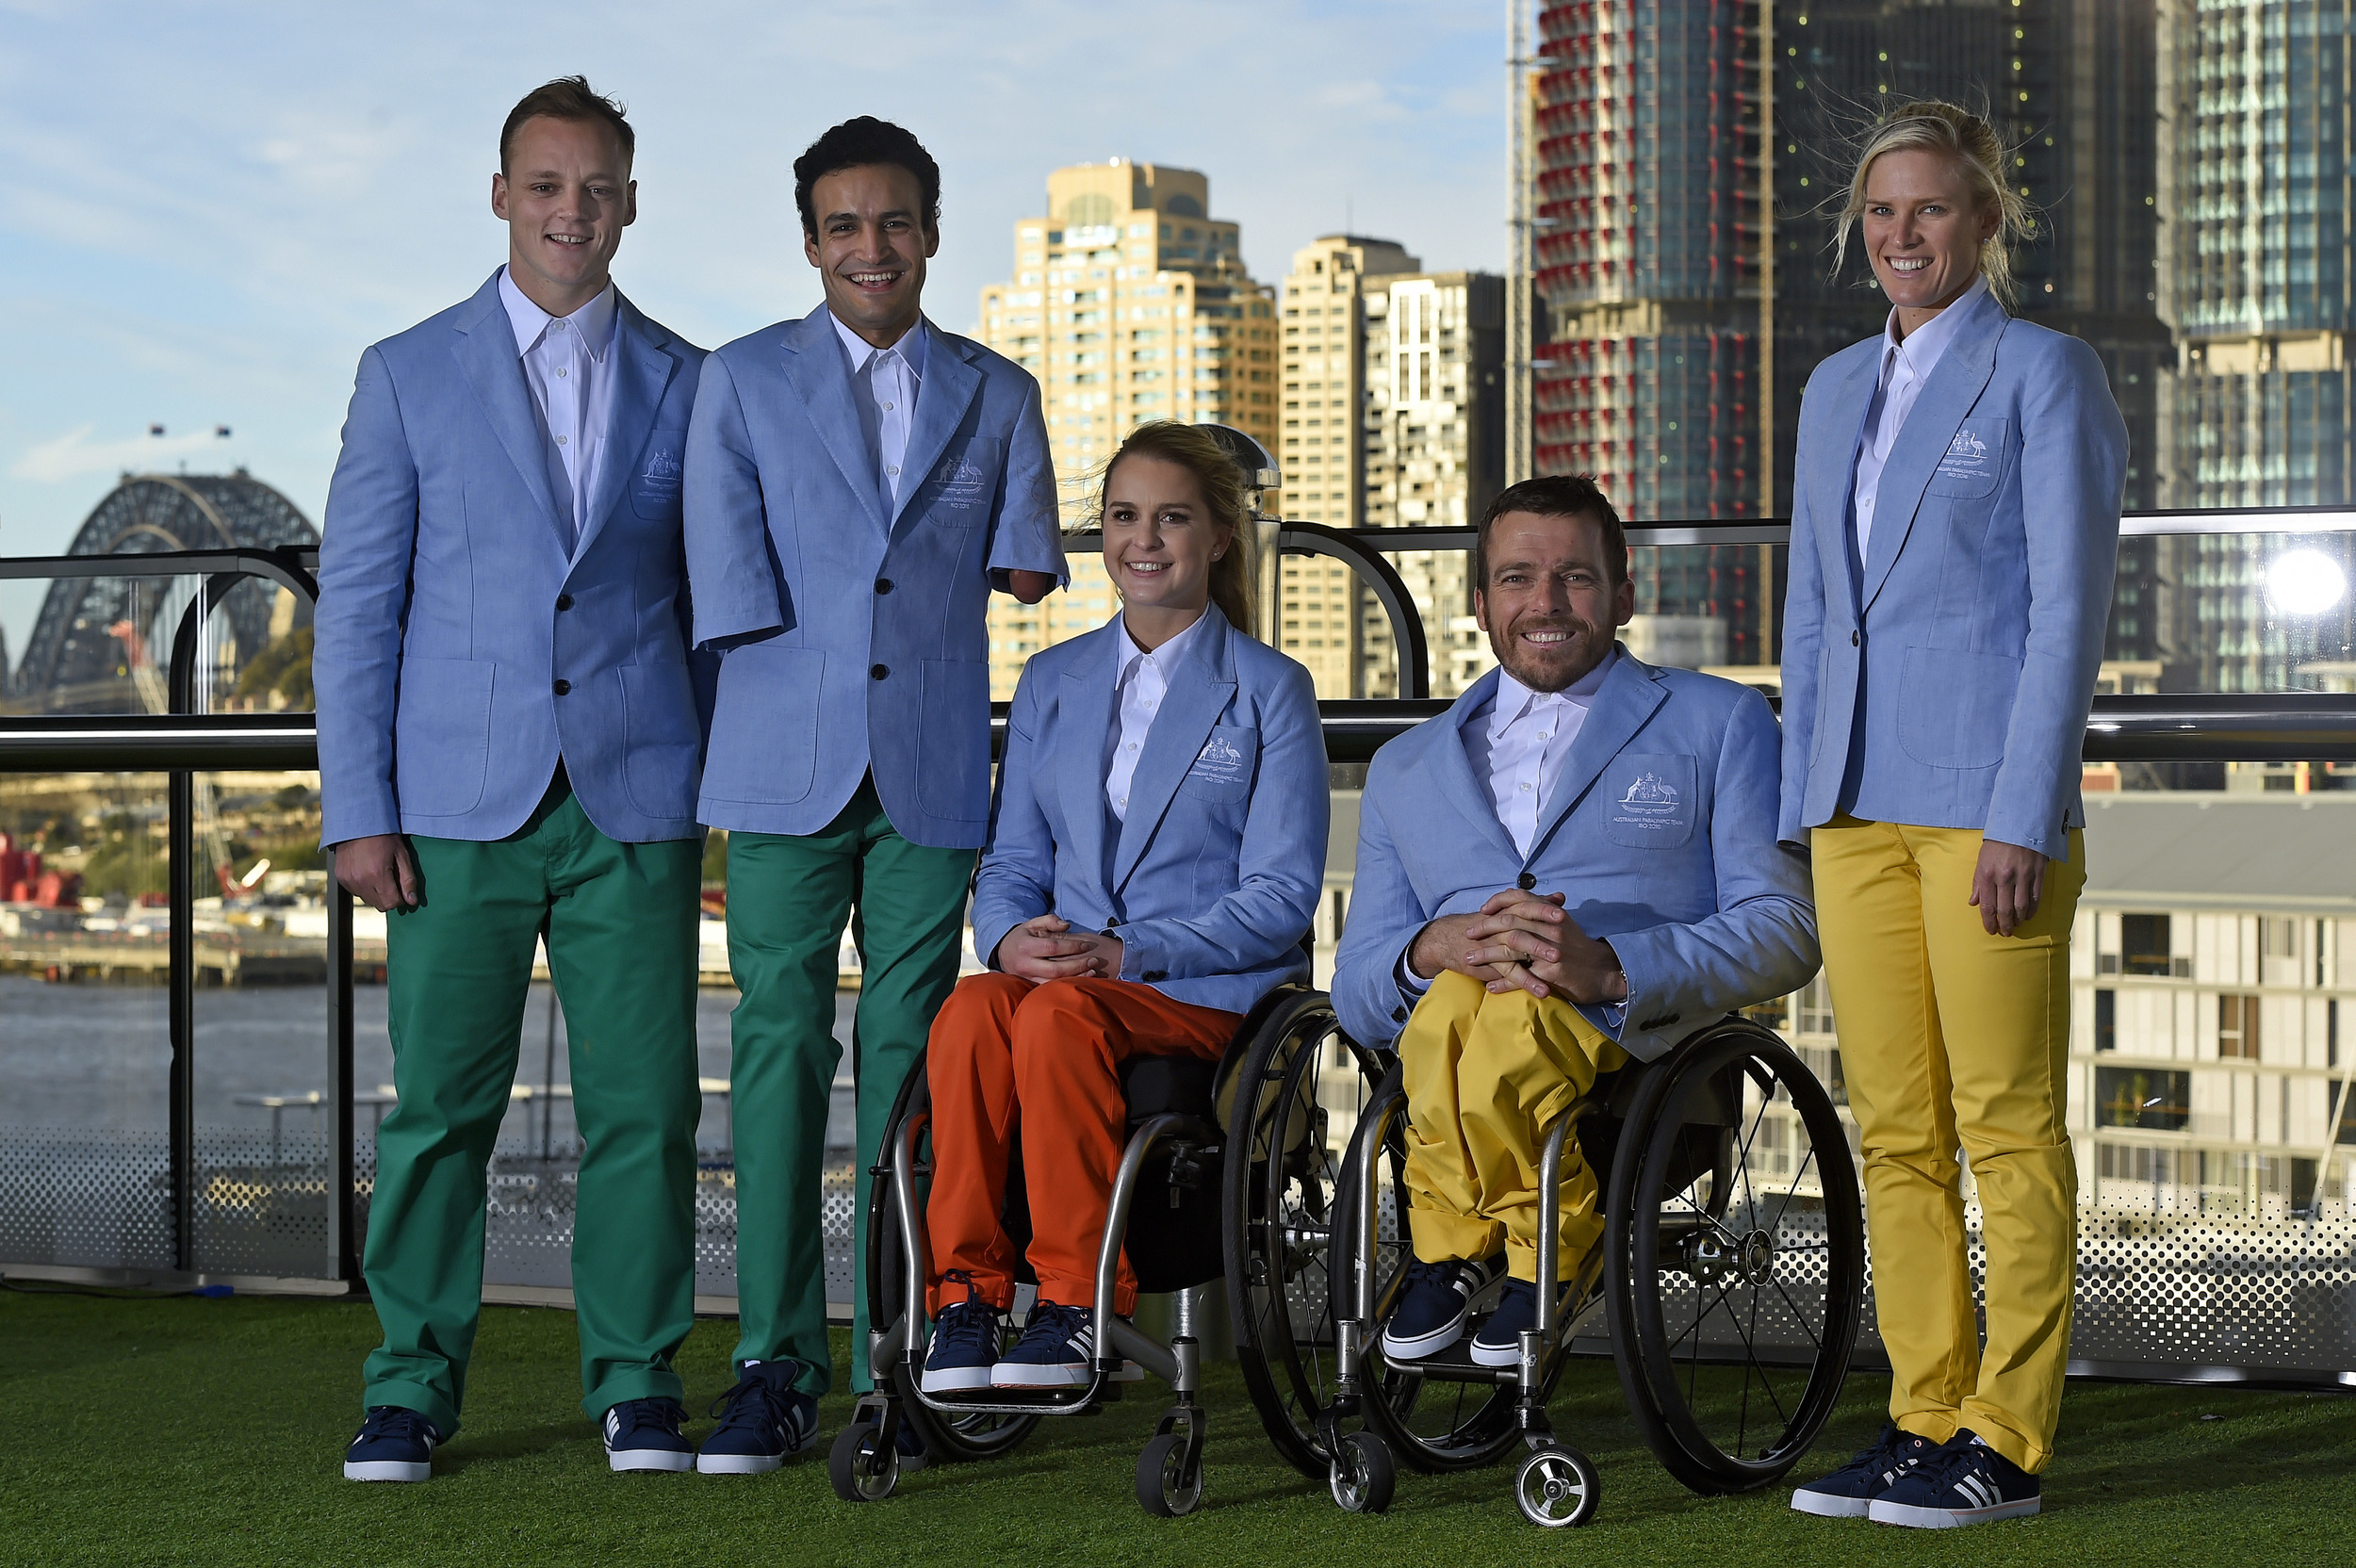 Ceremonial wear L-R - Jayden Sawyer (athletics), Ahmed Kelly (athletics), Emma Booth (equestrian), Kurt Fearnley (athletics), Kate Doughty (Paratriathlon)